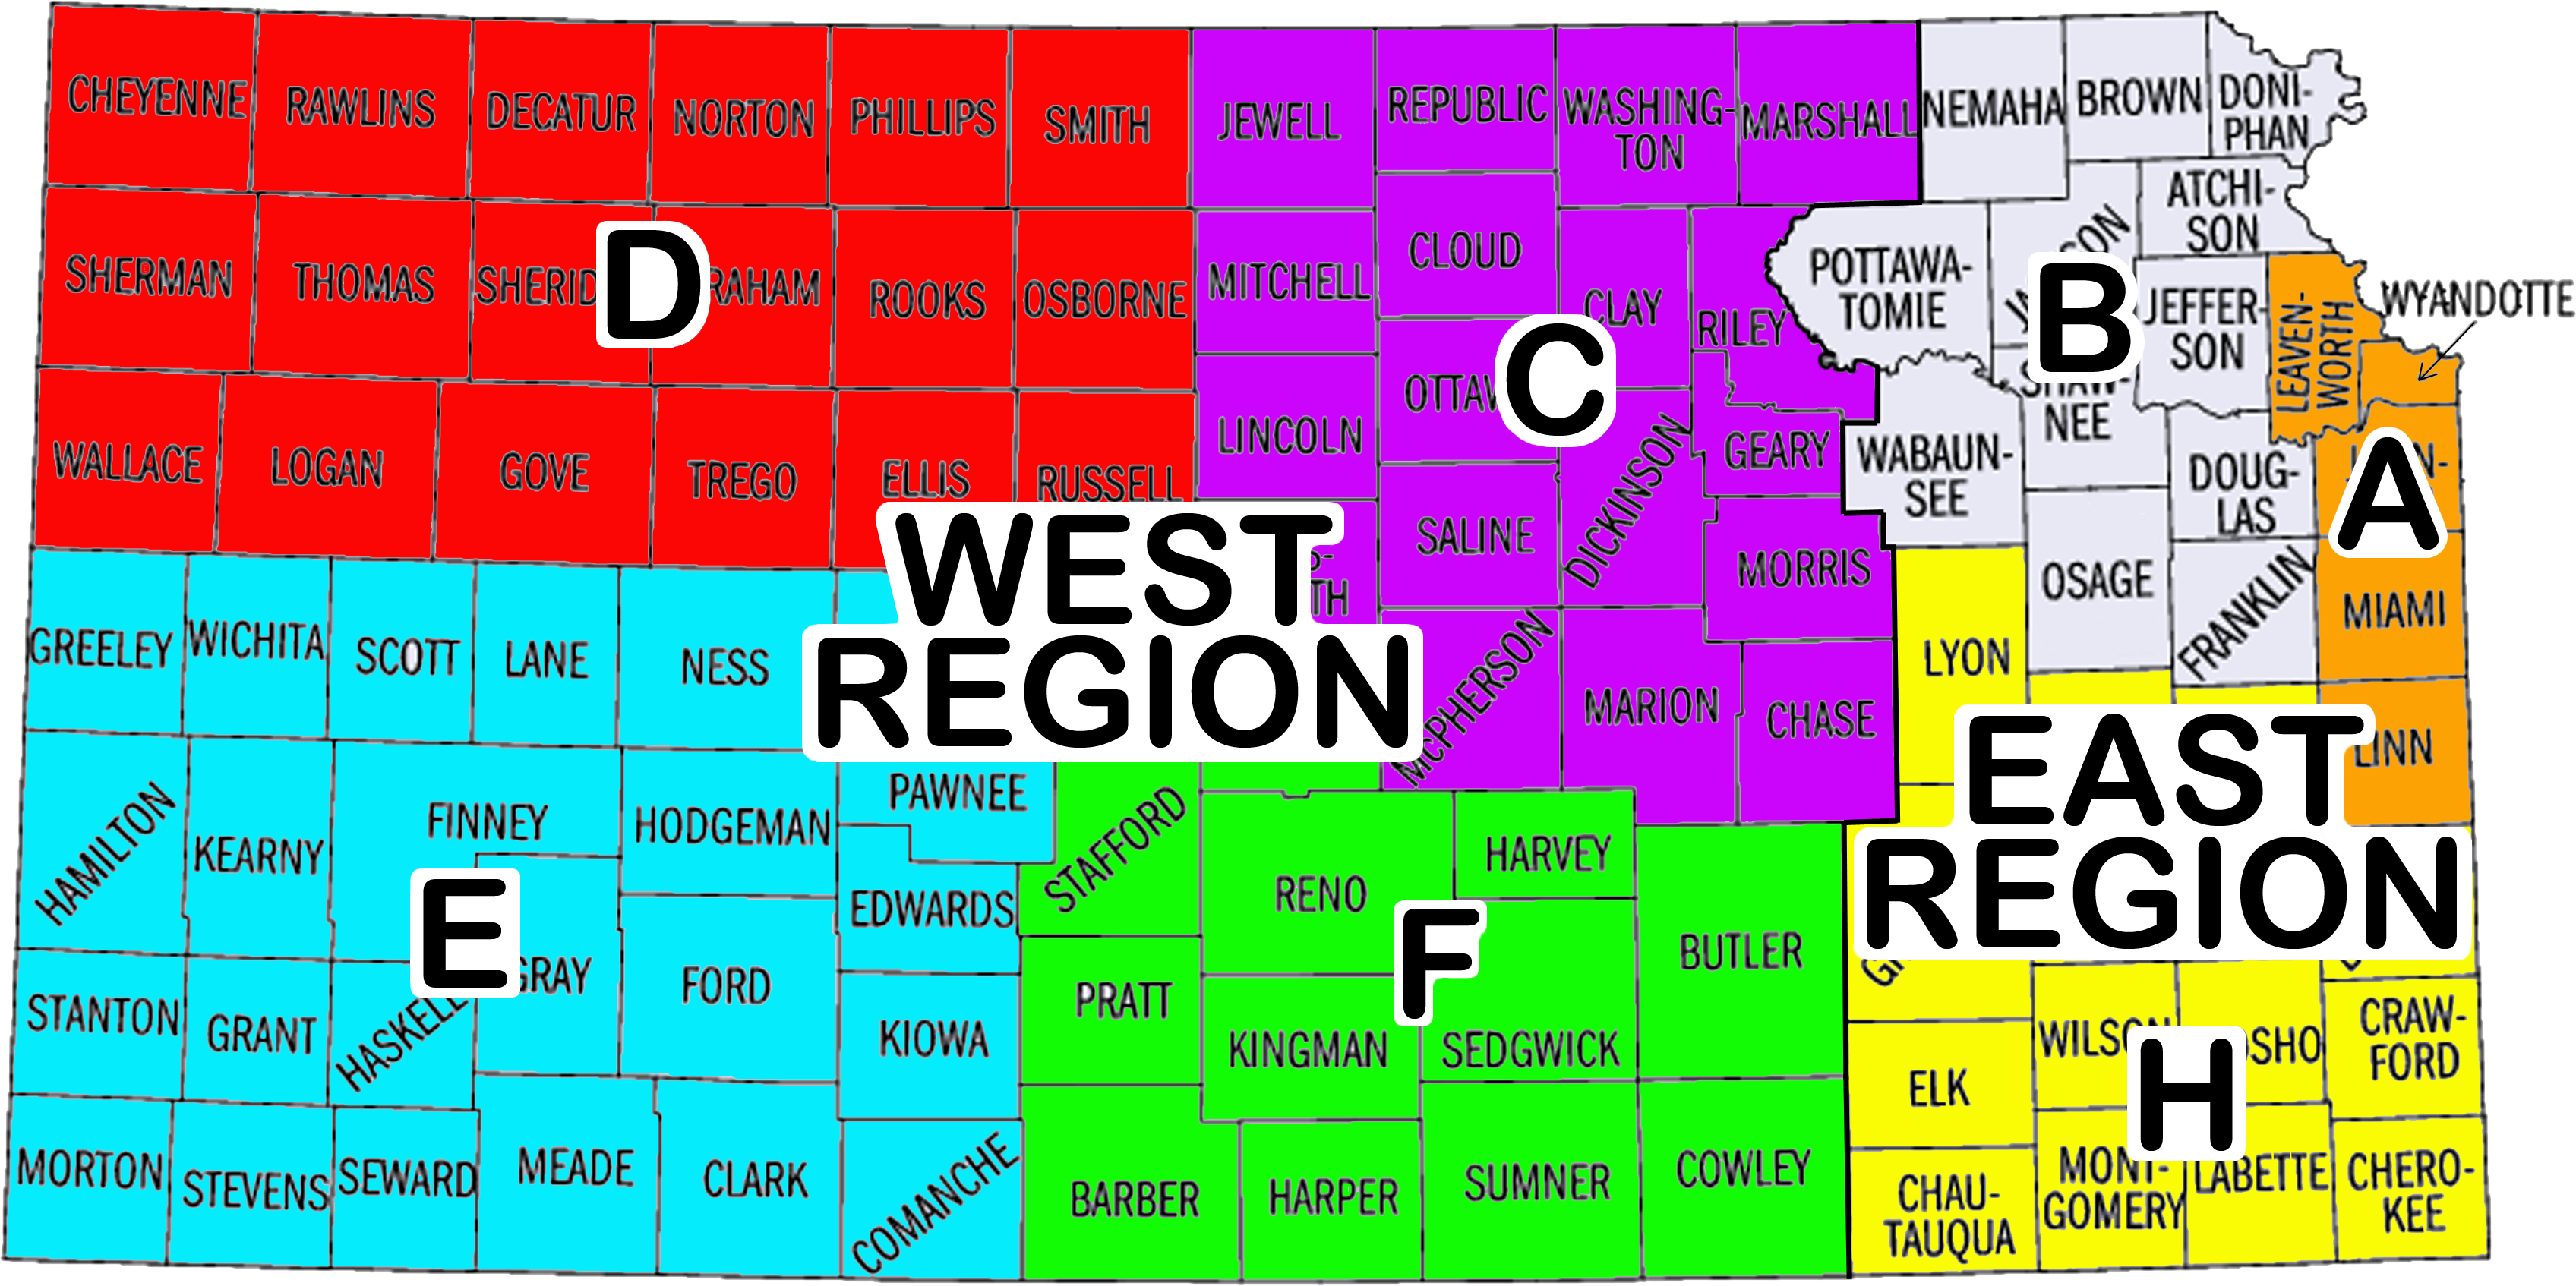 kansas highway conditions map File Ks Highway Patrol Troop Map Png Wikimedia Commons kansas highway conditions map